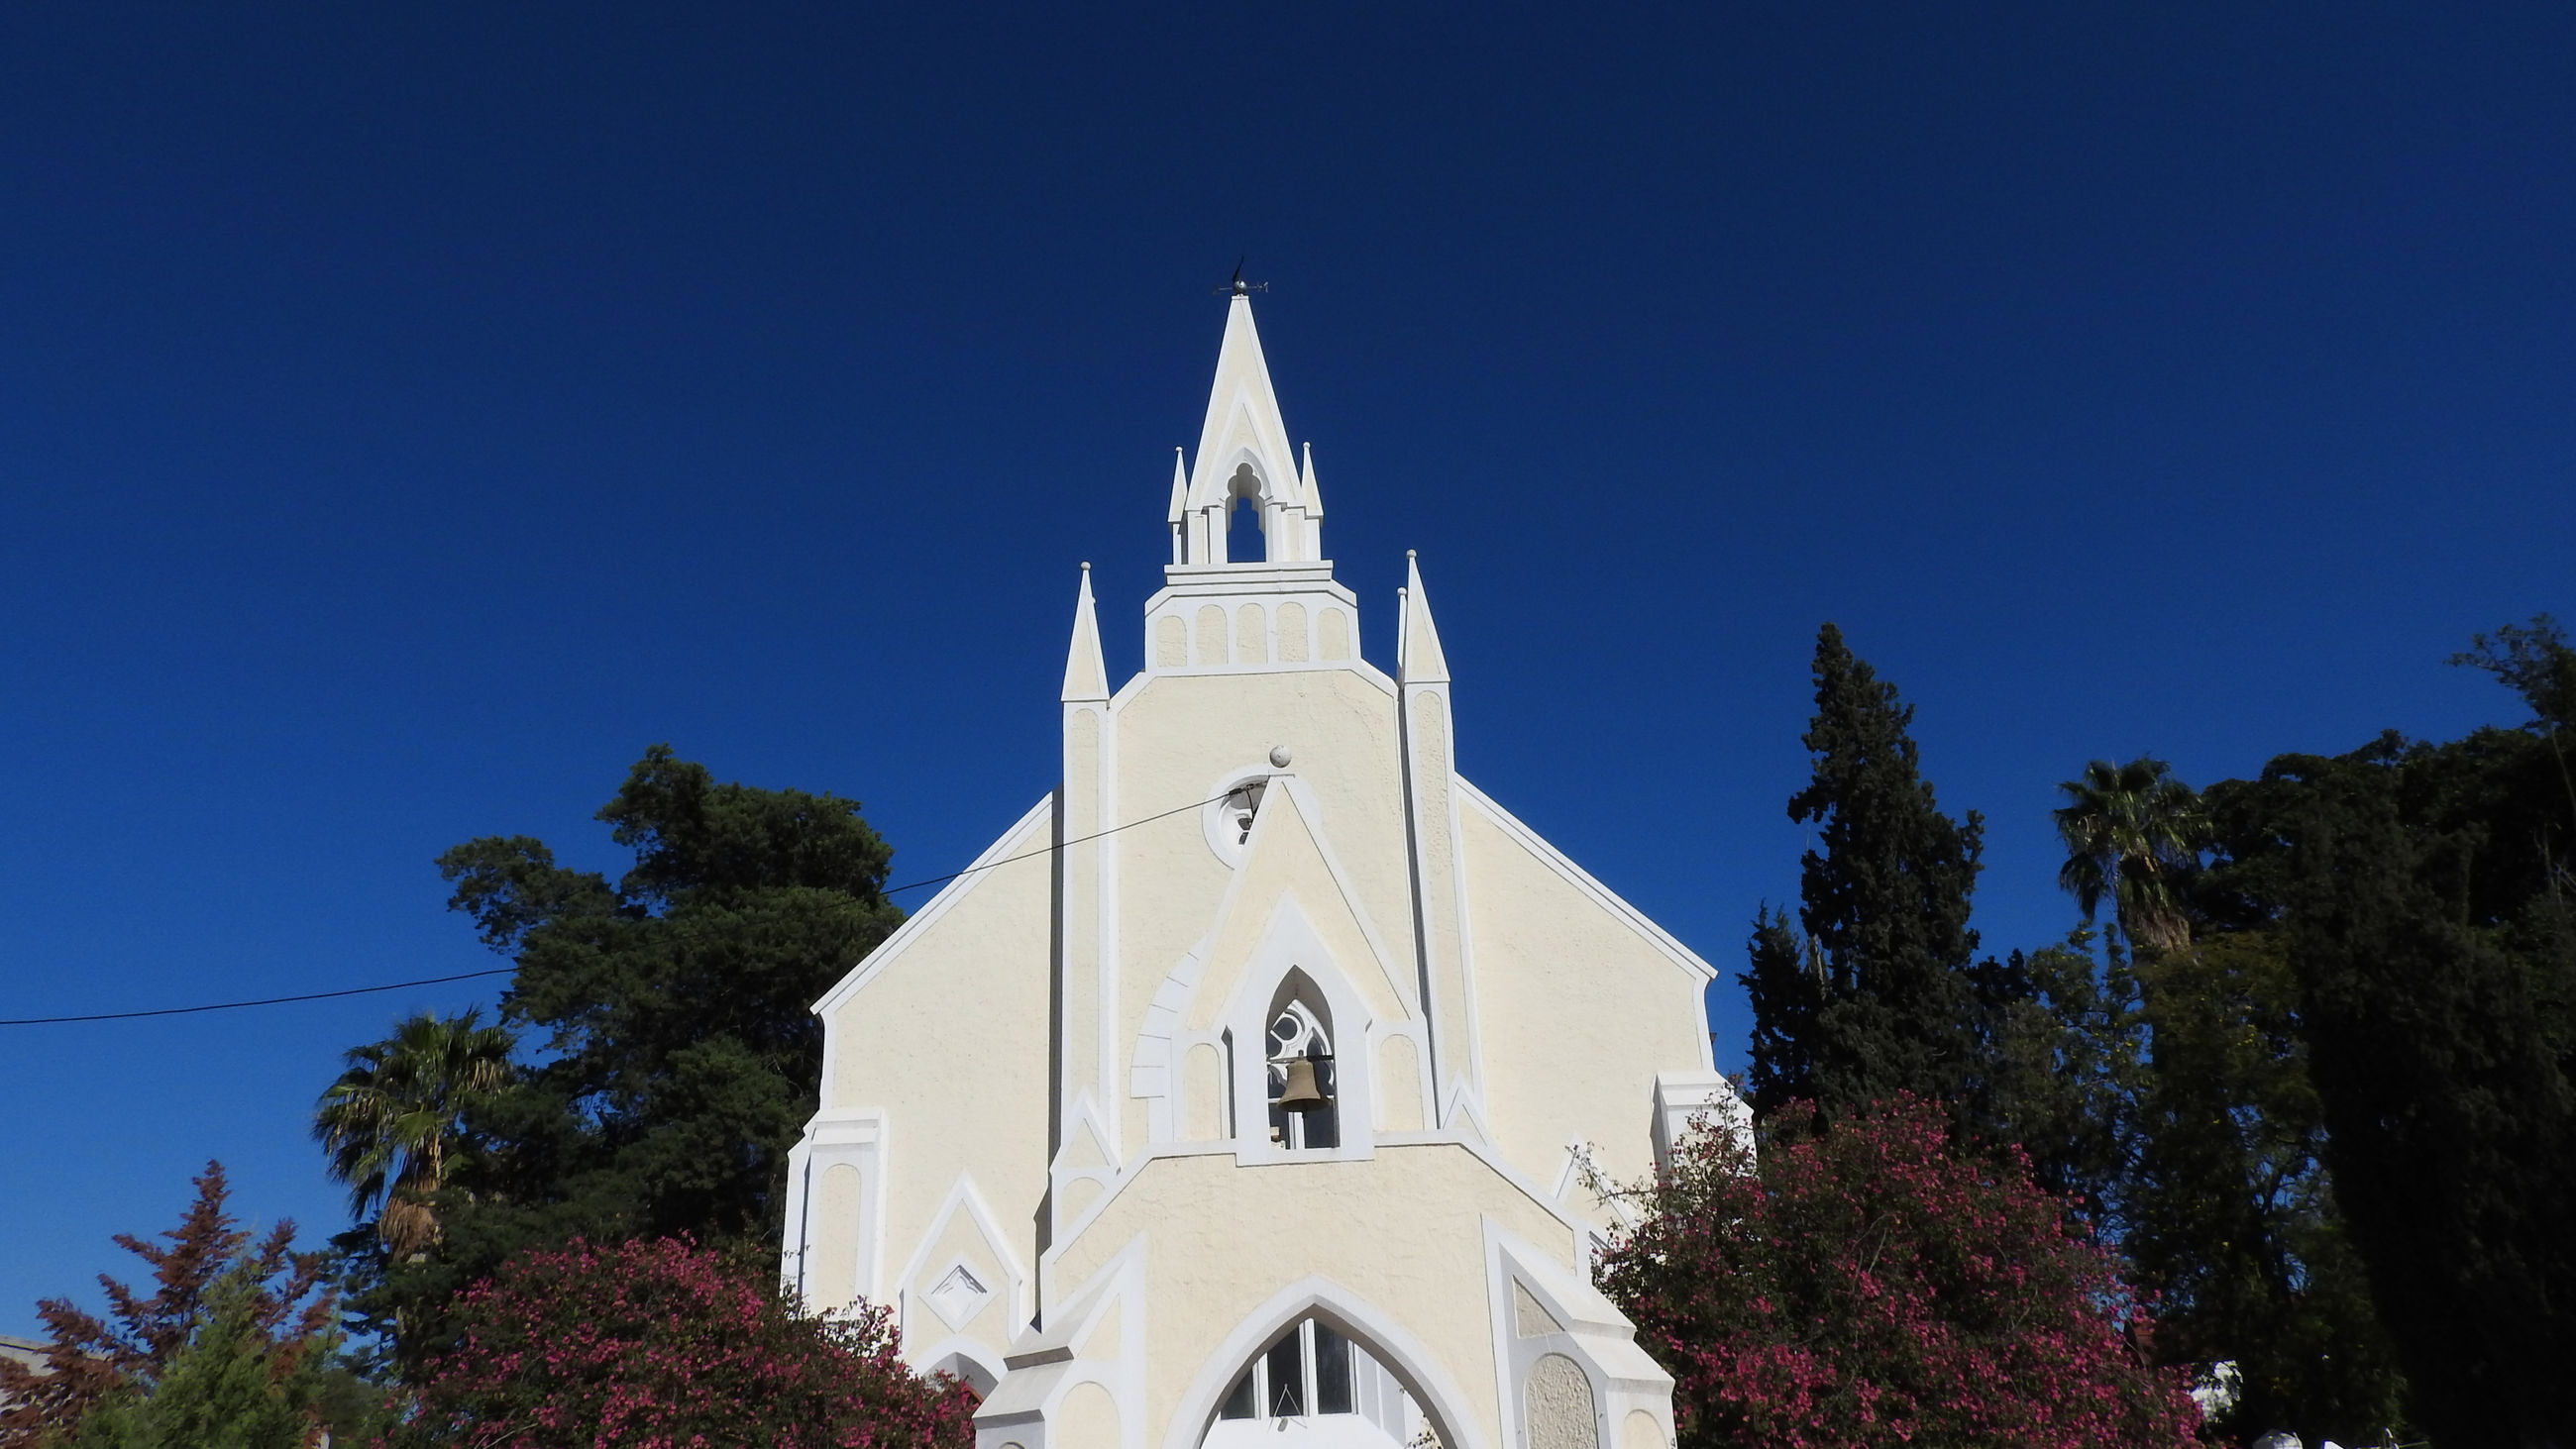 architecture, religion, building exterior, place of worship, built structure, church, spirituality, low angle view, clear sky, tree, blue, outdoors, facade, day, high section, exterior, bell tower, steeple, no people